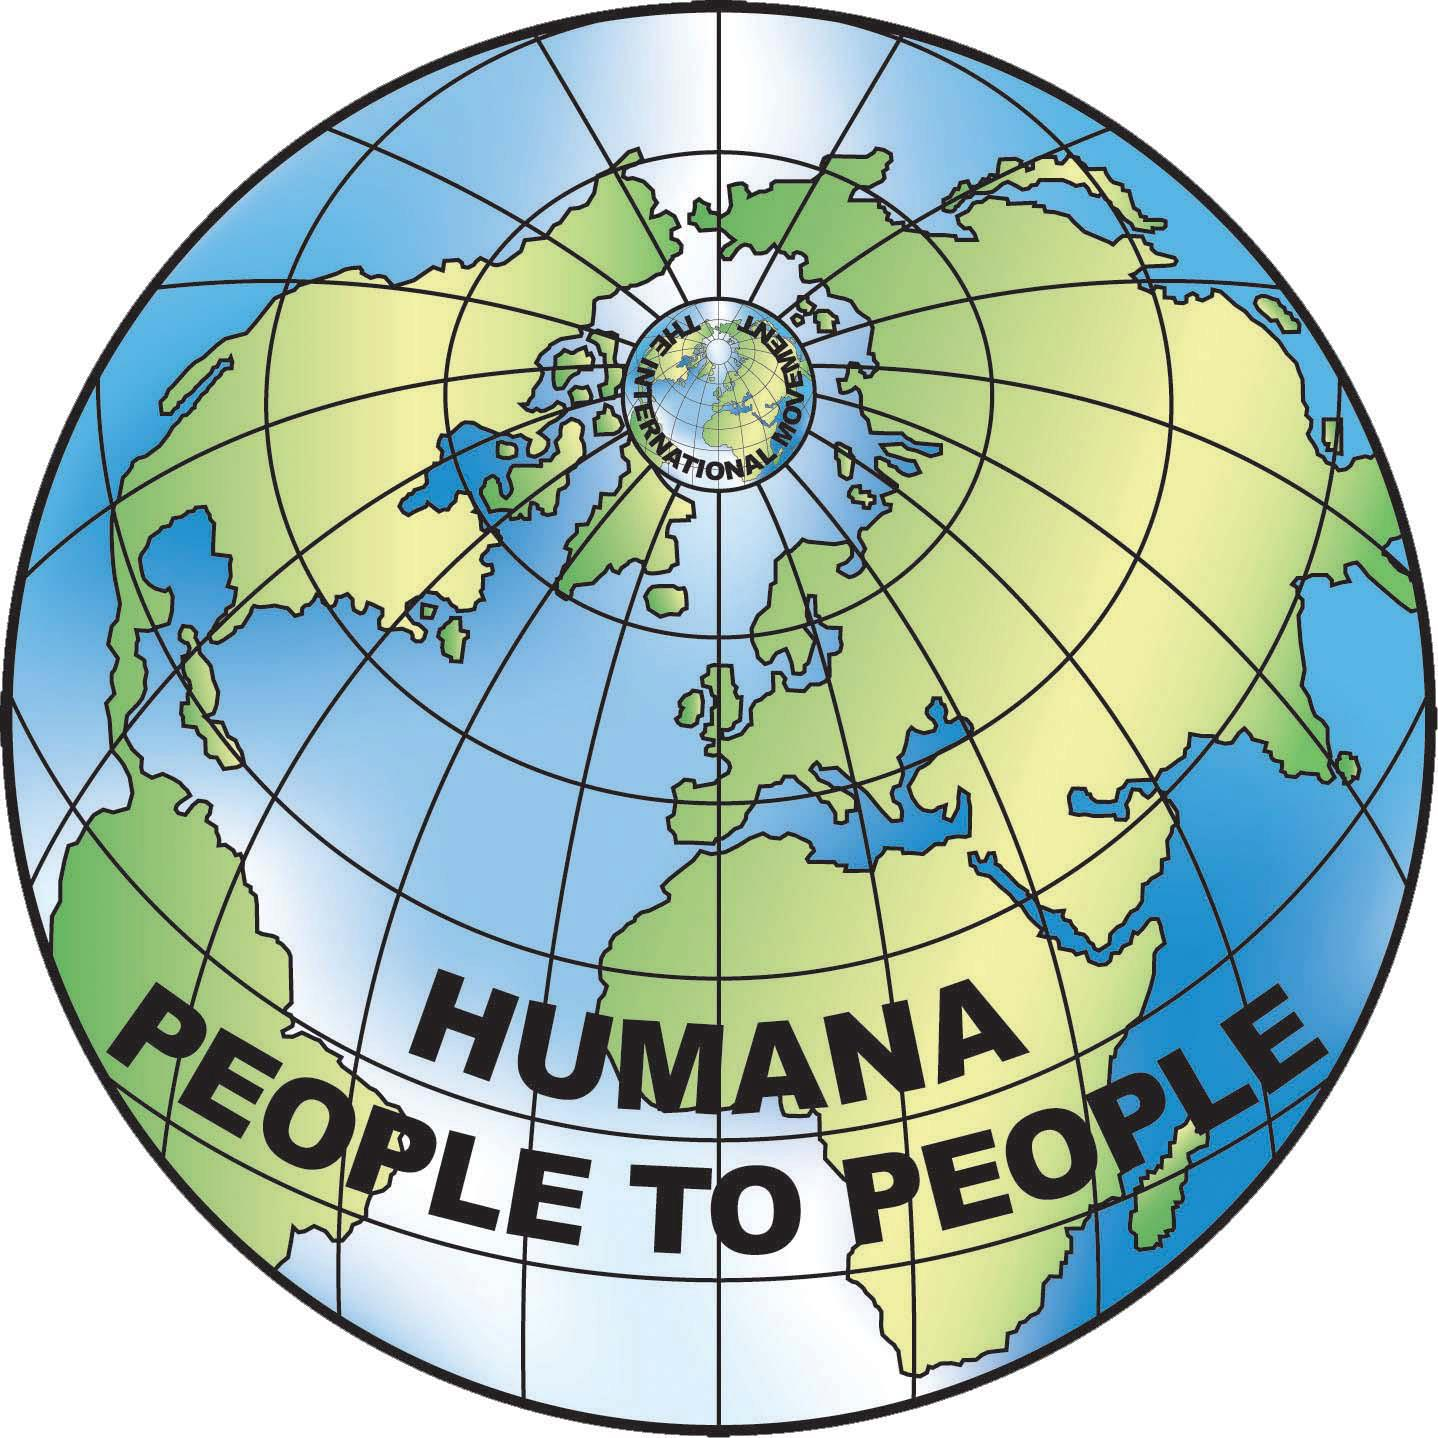 Volunteer abroad with the Humana People to People Movement.